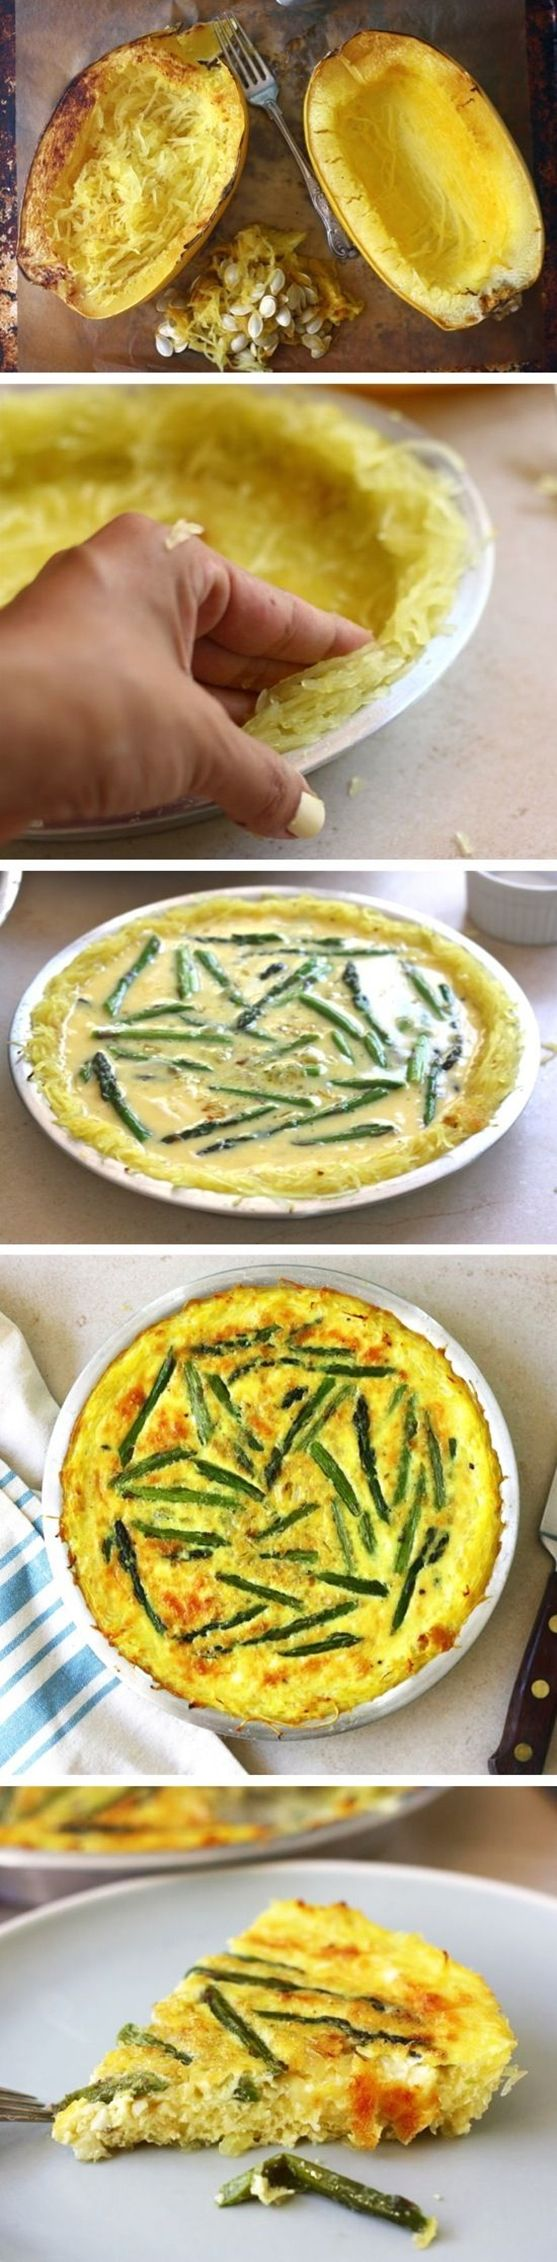 Spaghetti Squash Crust Asparagus Quiche for AIP after eggs reintroduced, coconut milk for milk, eliminate seed spices and cheese